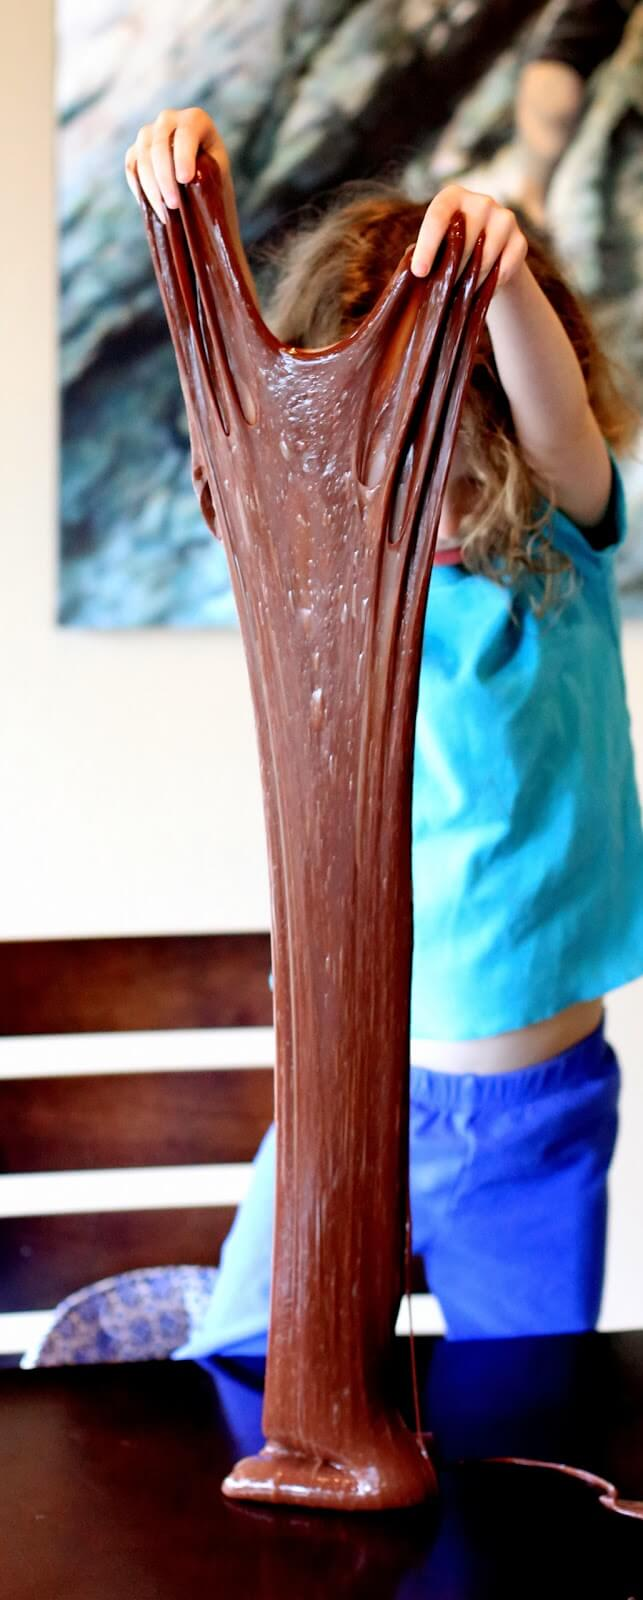 Chocolate Stretchy Slime Recipe from Fun at Home with Kids